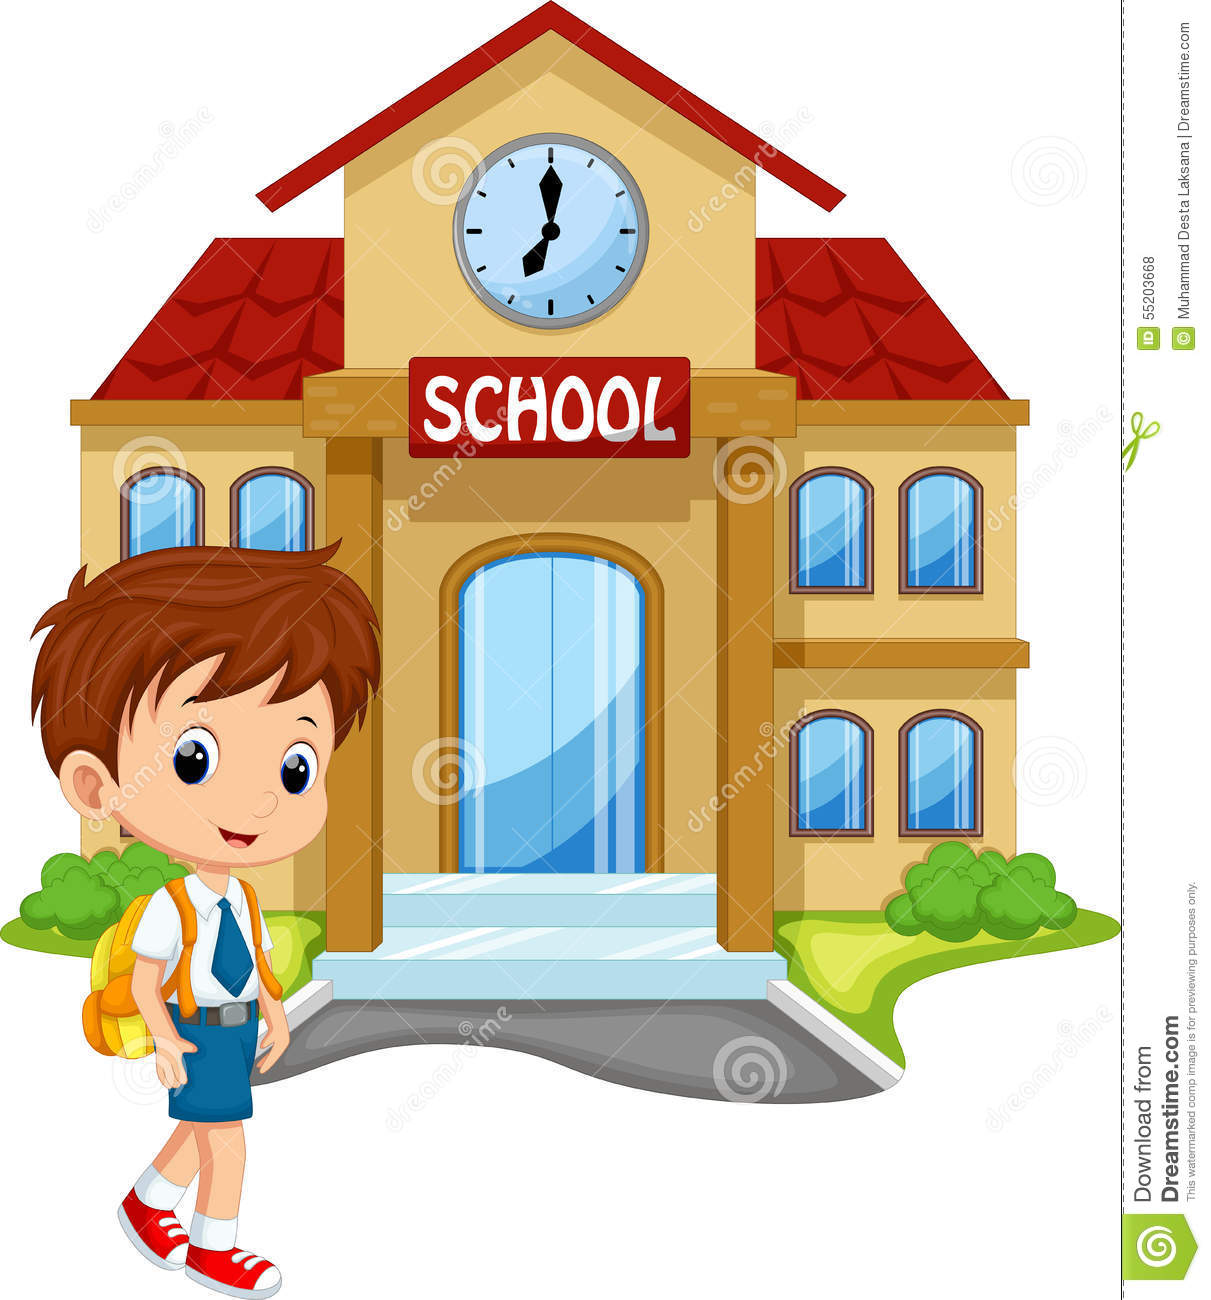 What Does a Dream about Going Back to School Mean?